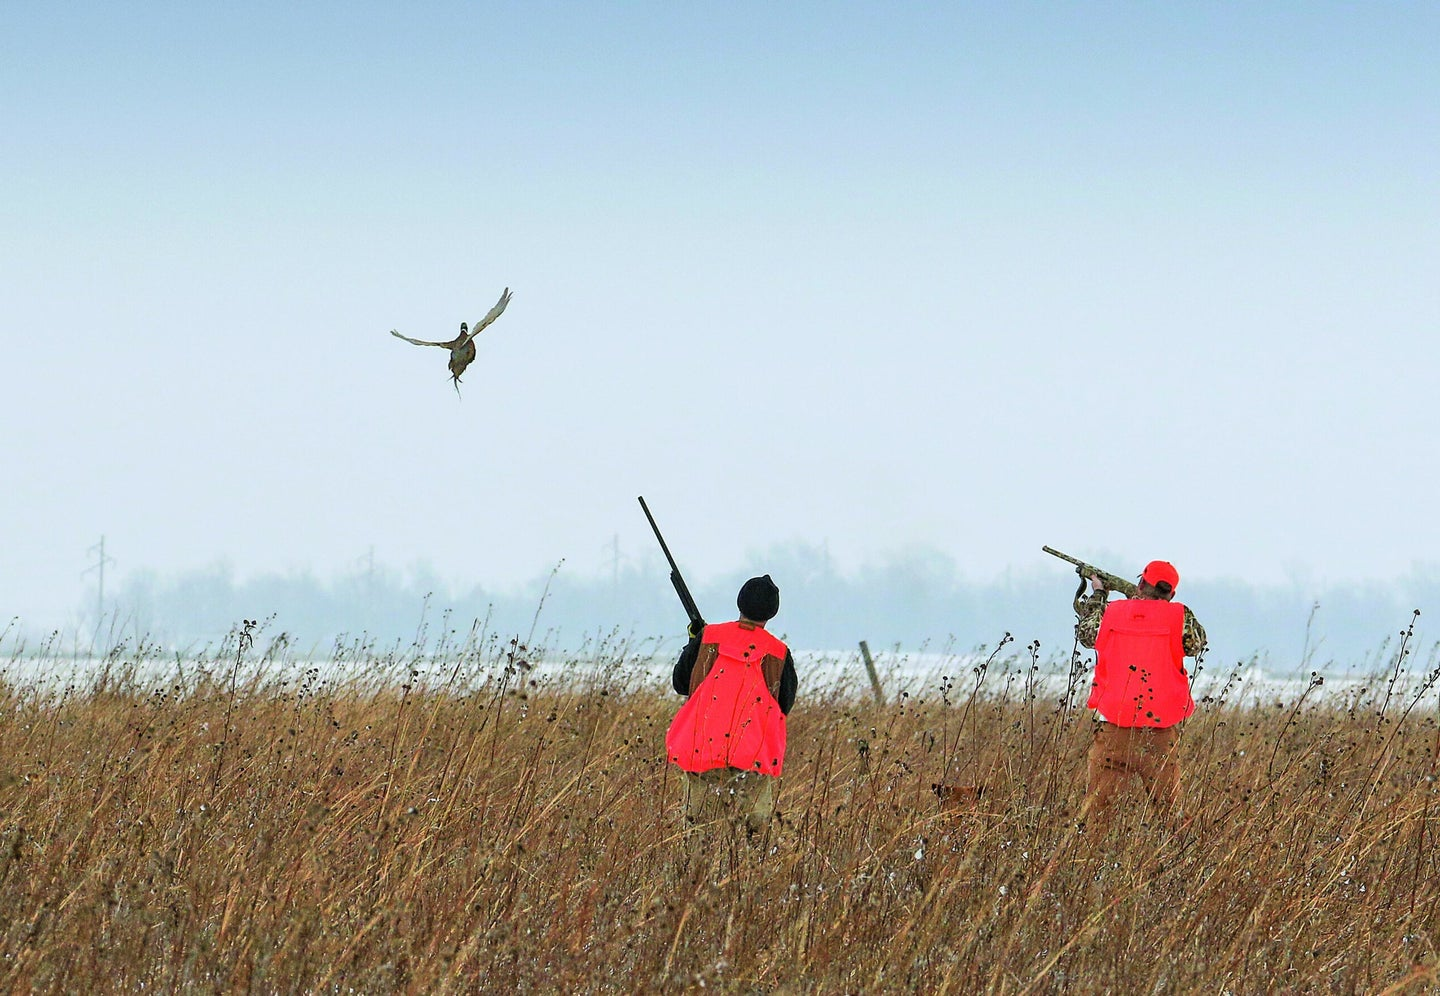 A pair of hunters dressed in blaze orange watch a flushing rooster pheasant.